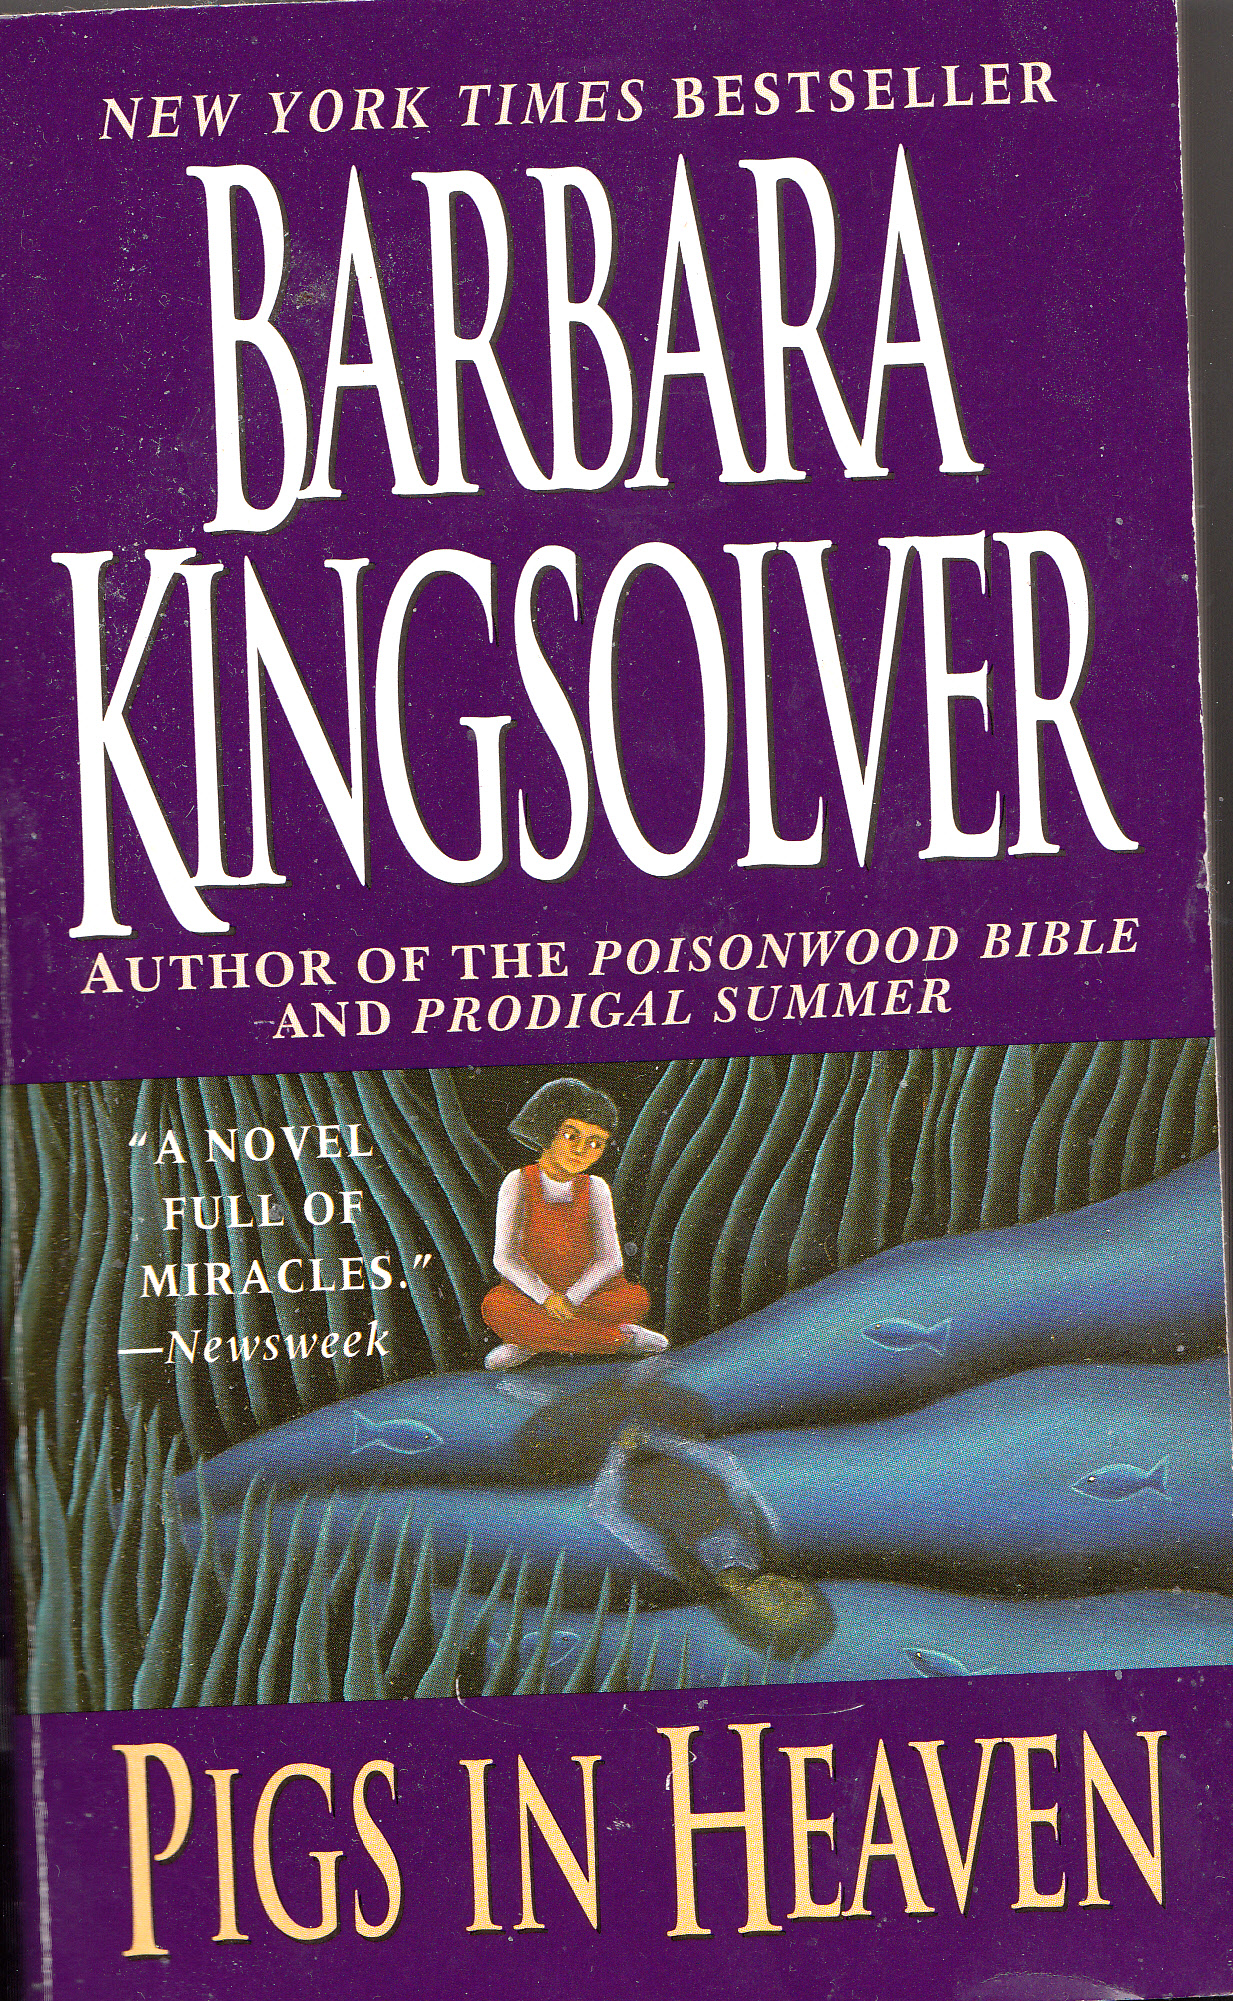 barbara kingsolver her life her work her words learn more my introduction to kingsolver was through her third novel pigs in heaven 1993 it technically was a sequel to her first novel the bean trees 1988